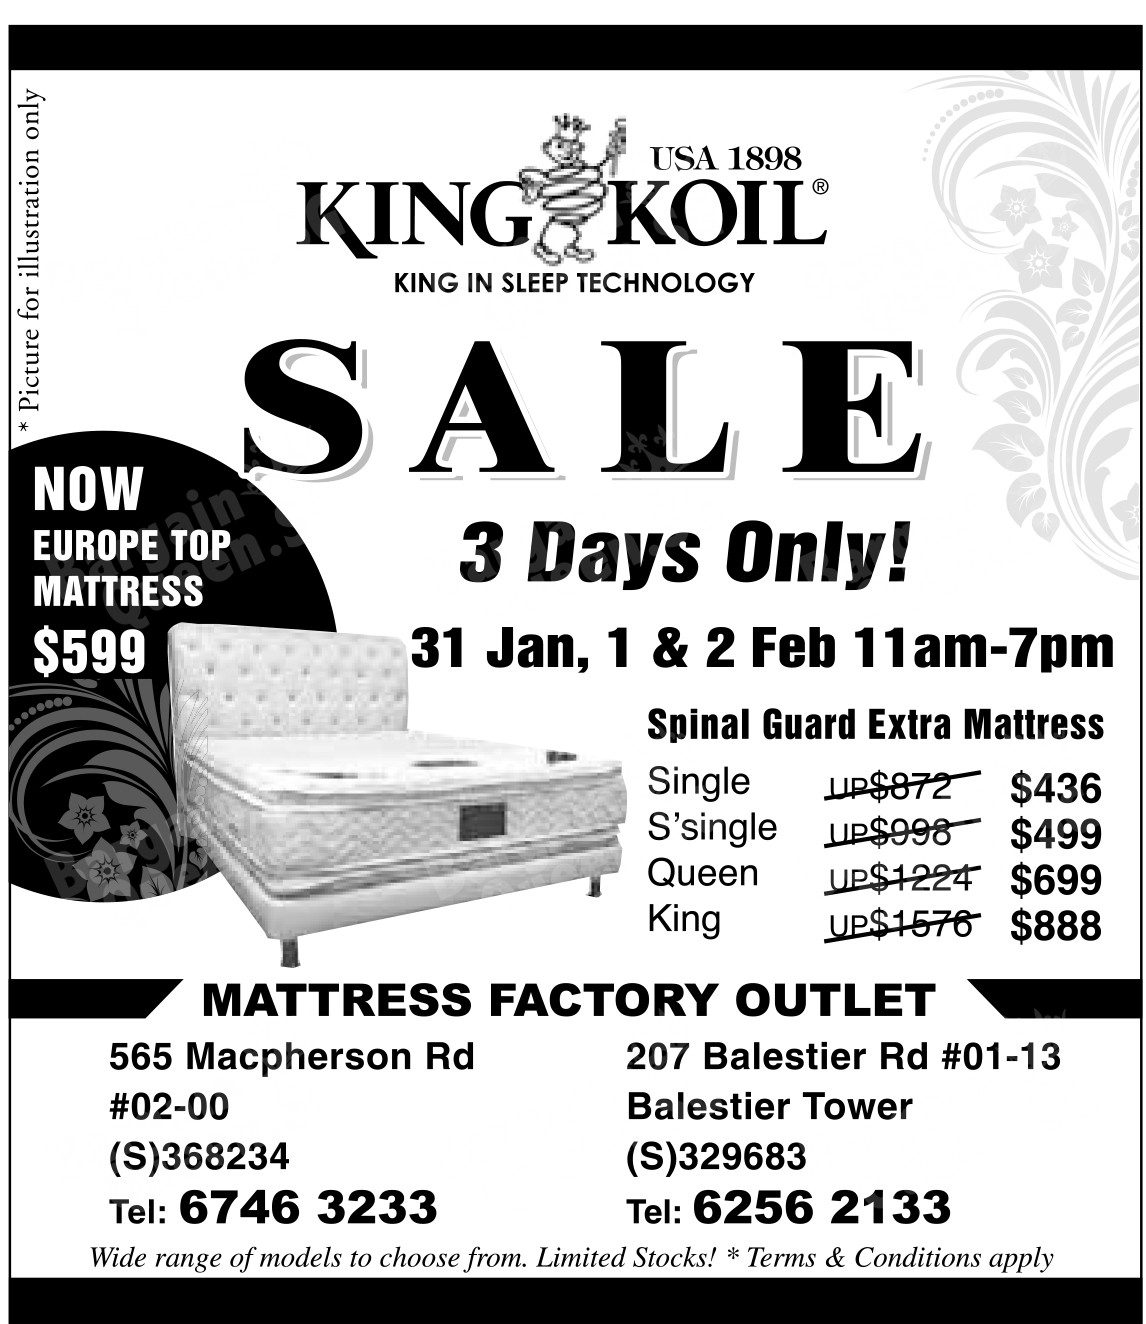 singapore friday won sale o miss dozen in black s want n t here wont deals a you to mattress